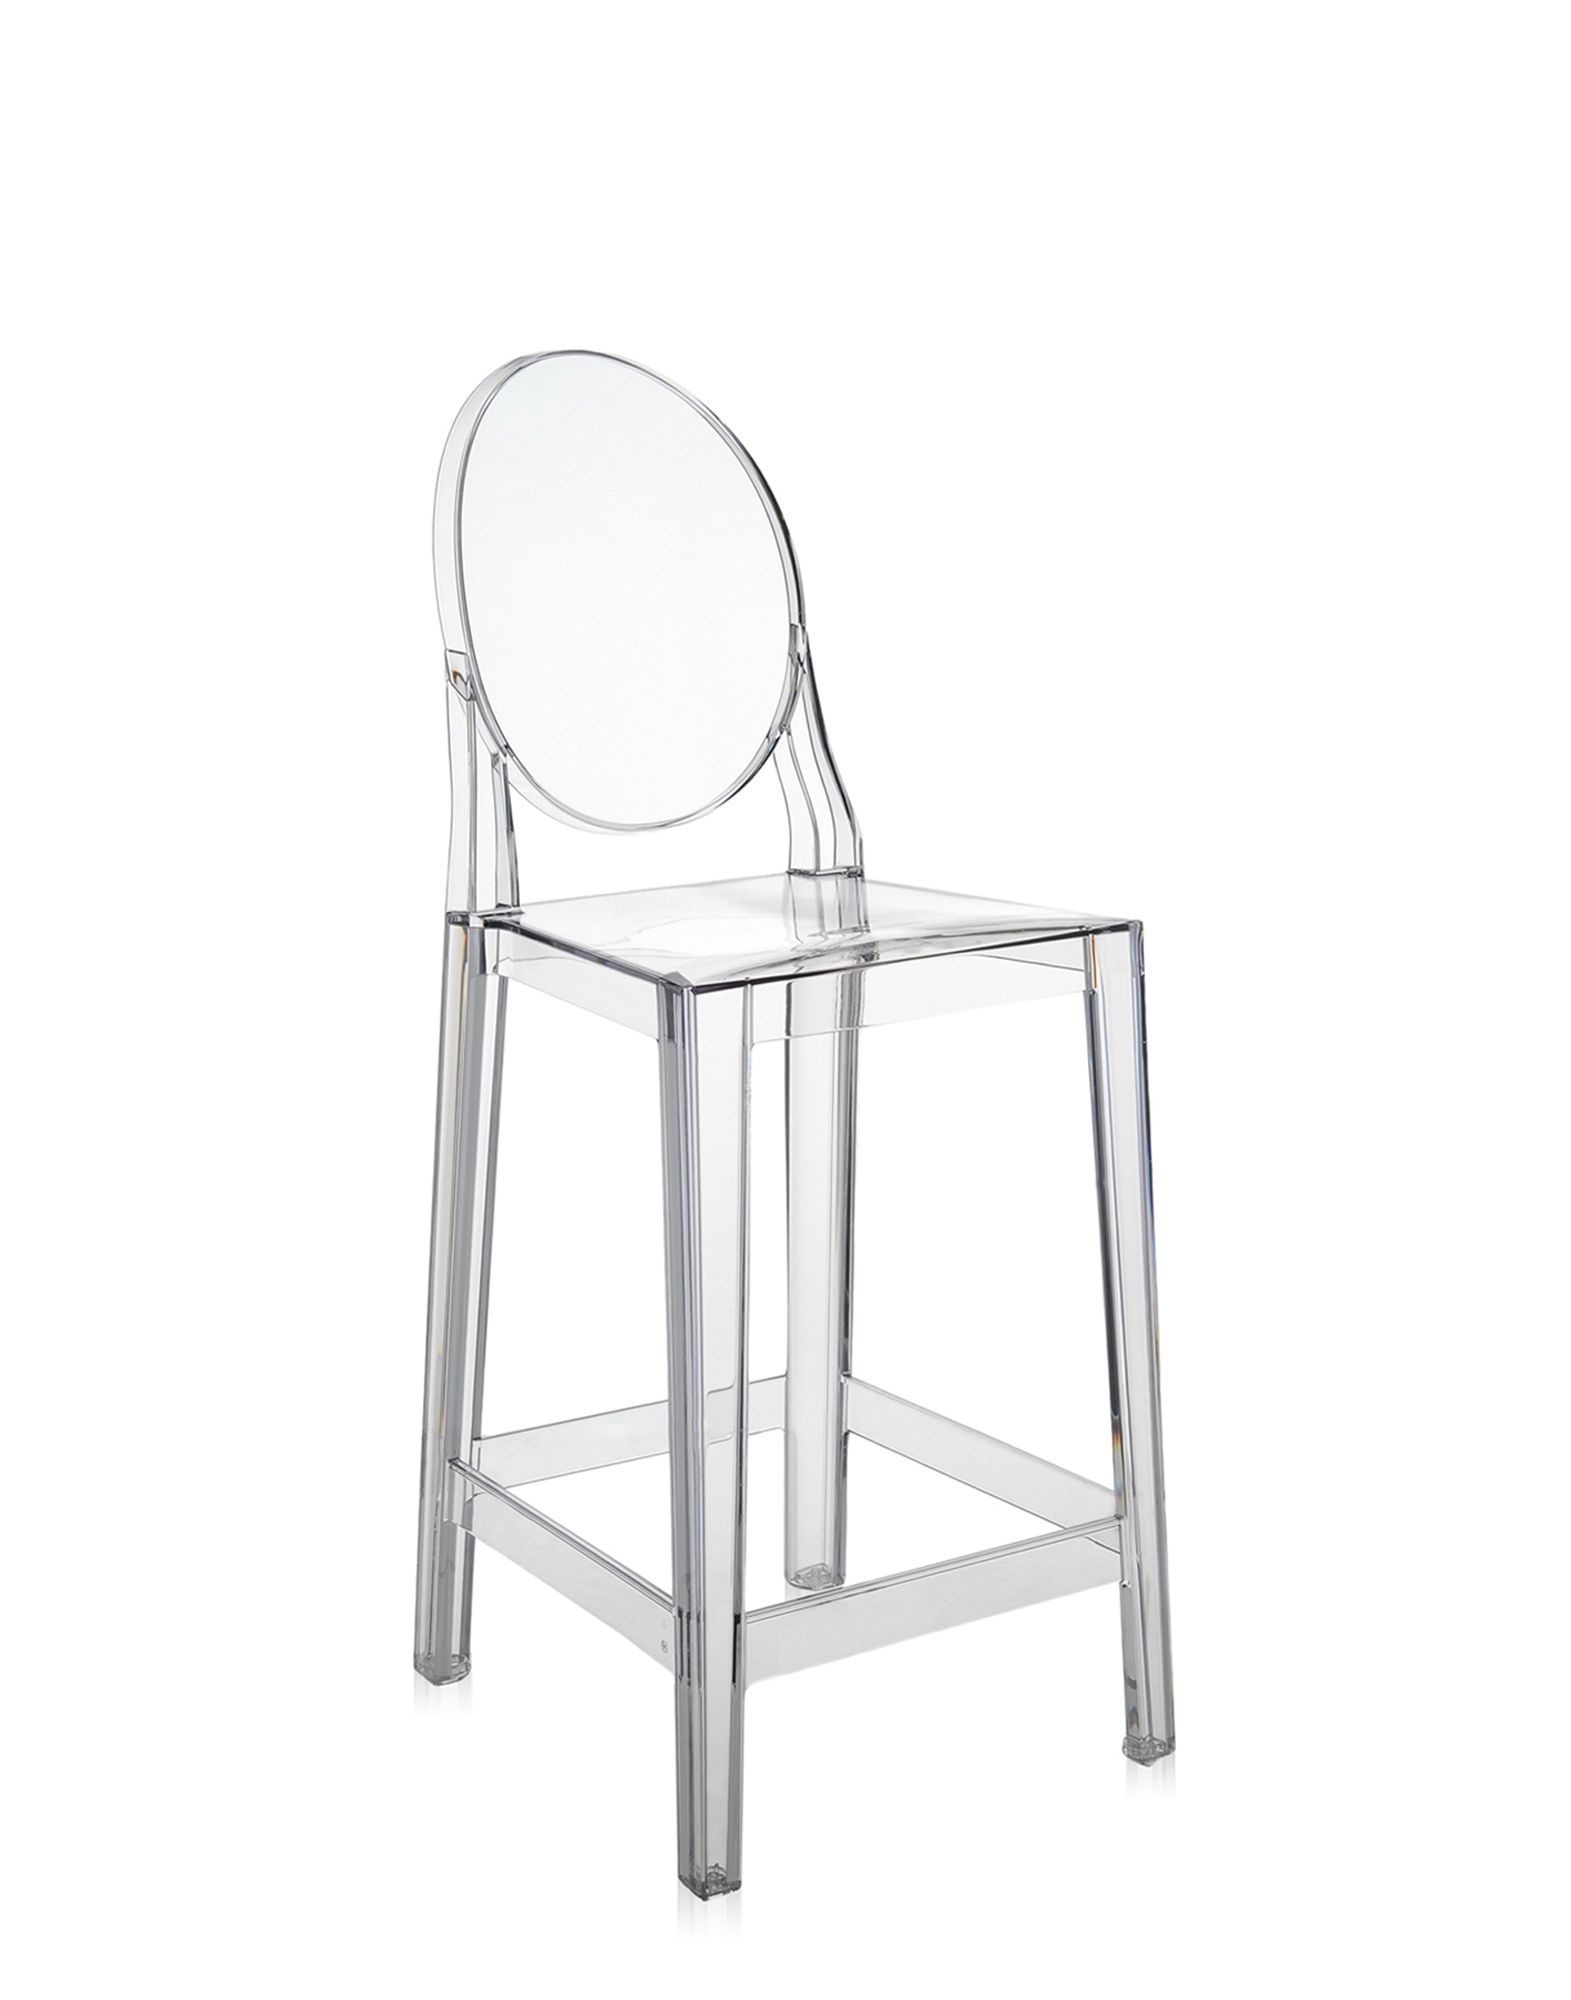 Sgabello one more di kartell in policarbonato trasparente for Sgabelli kartell outlet